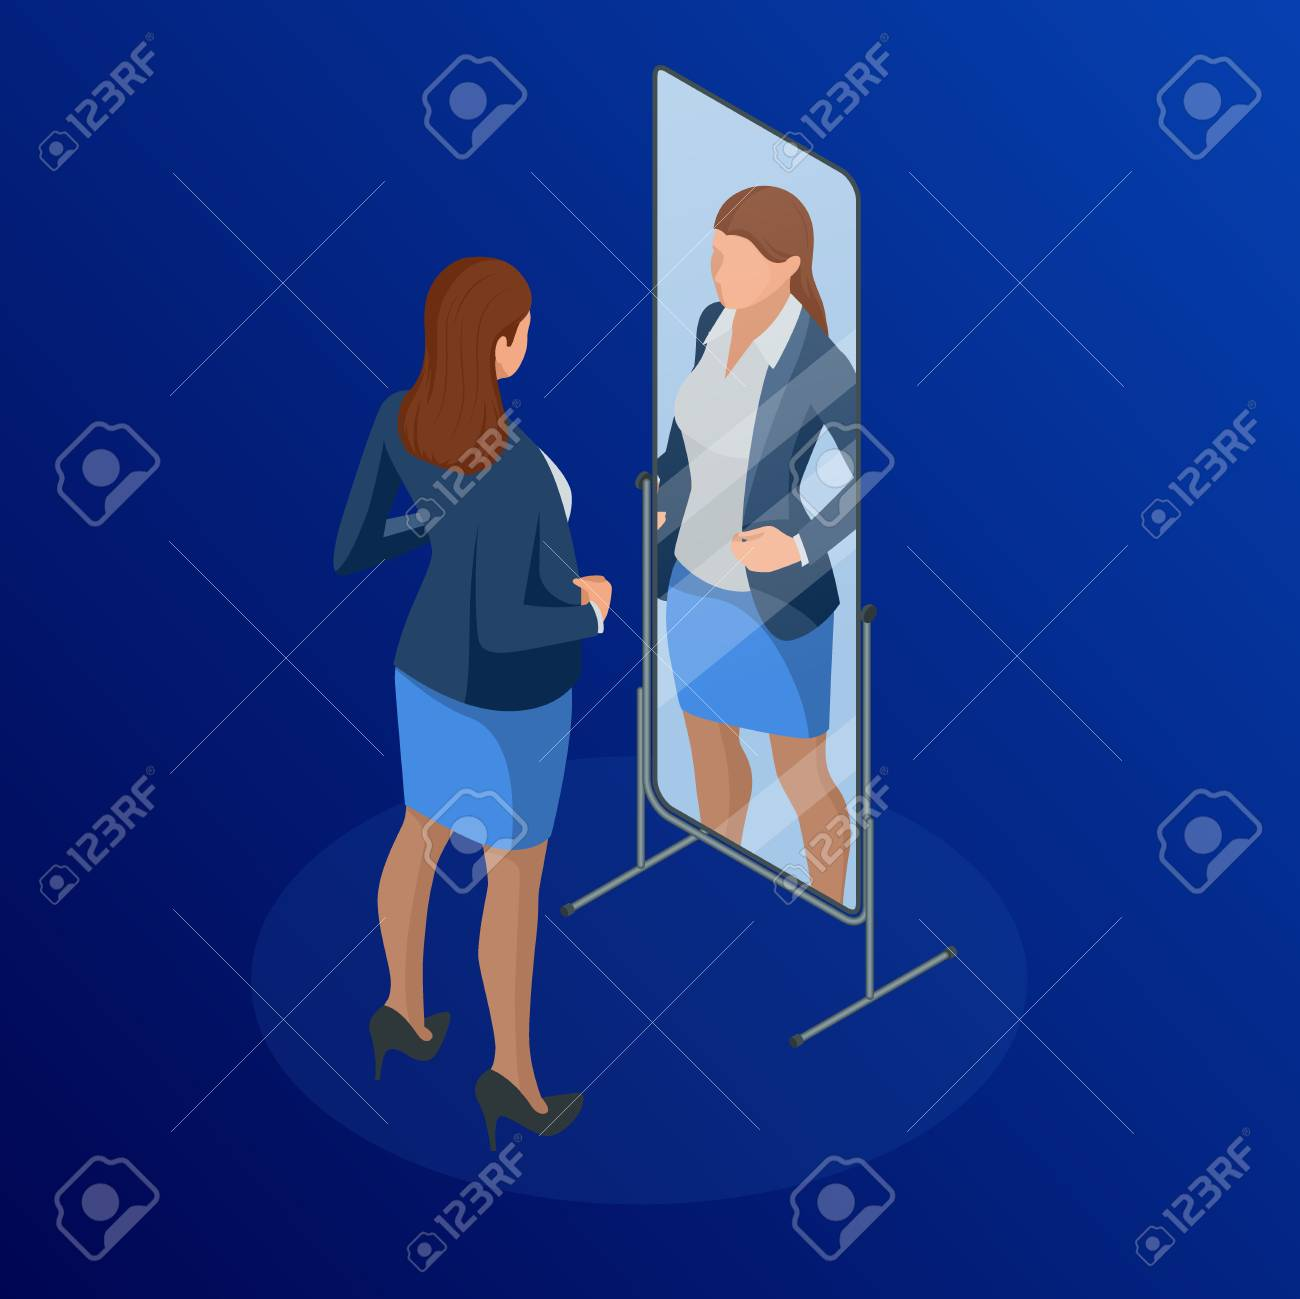 Isometric business woman adjusting tie in front of the mirror. Man checking his appearance in the mirror. Businessman looking himself in the mirror vector flat design illustration - 100939220